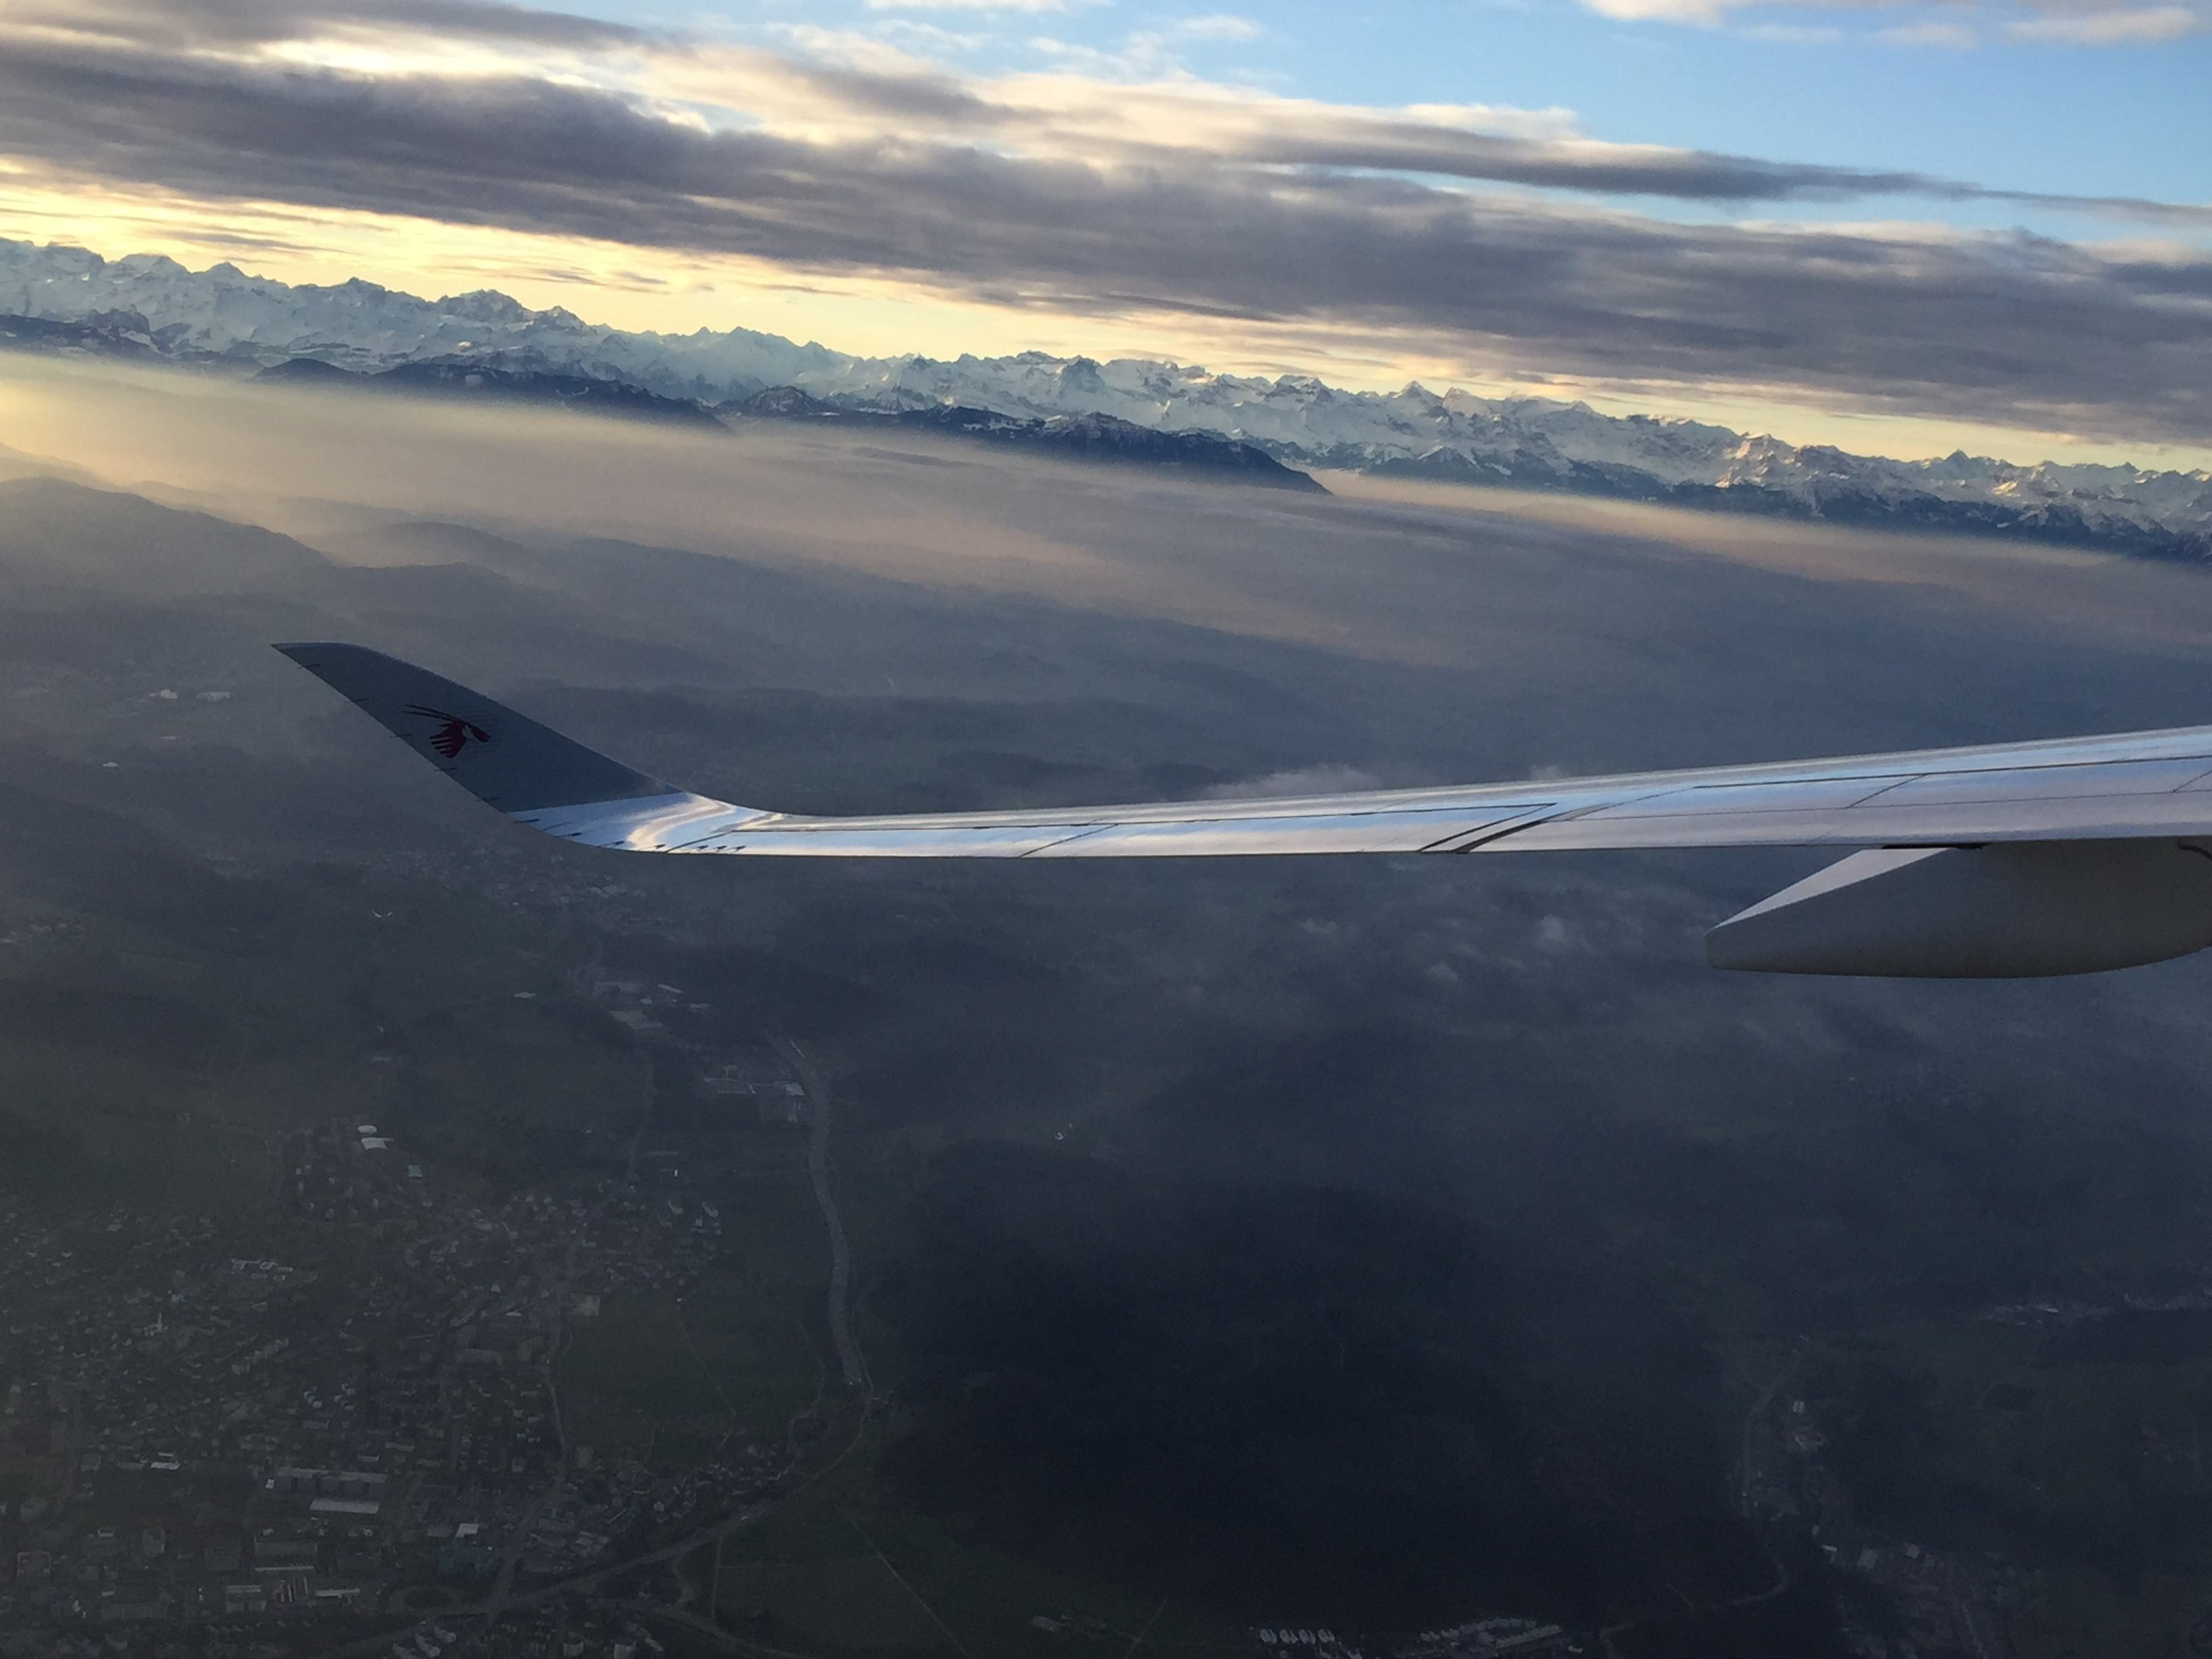 QR94 above the Swiss Alps